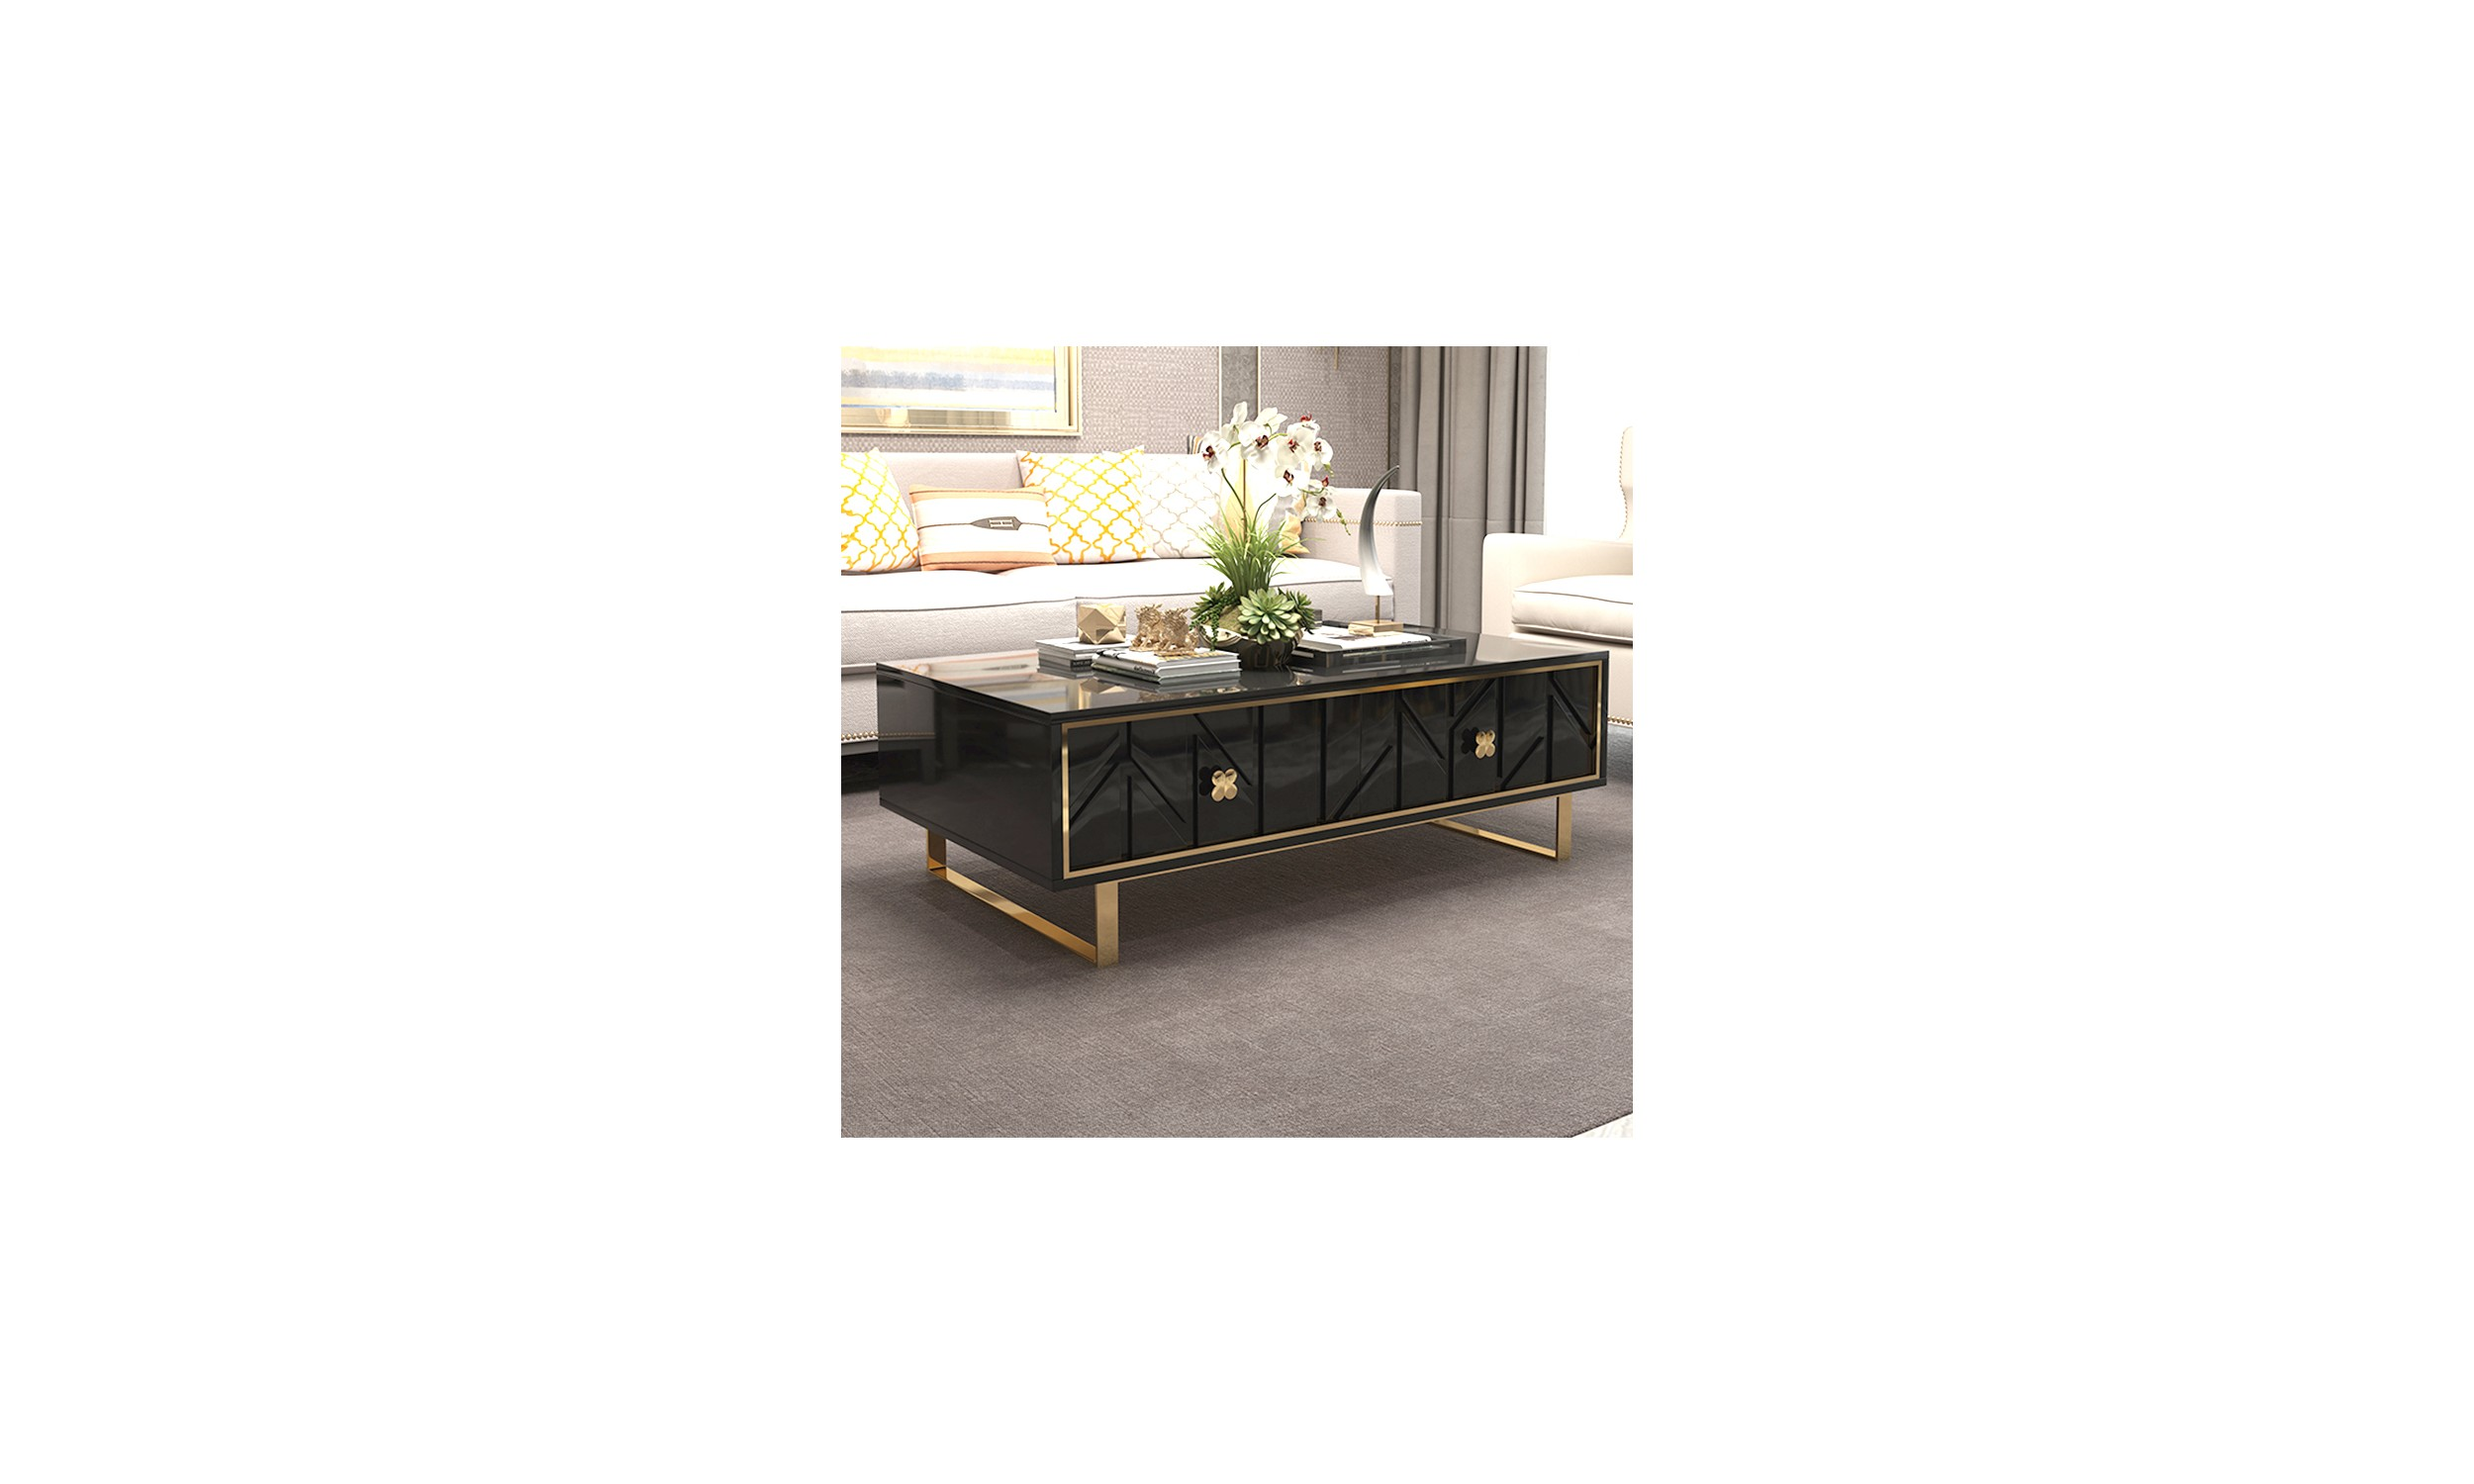 Table basse design couleur noir et or Fendy